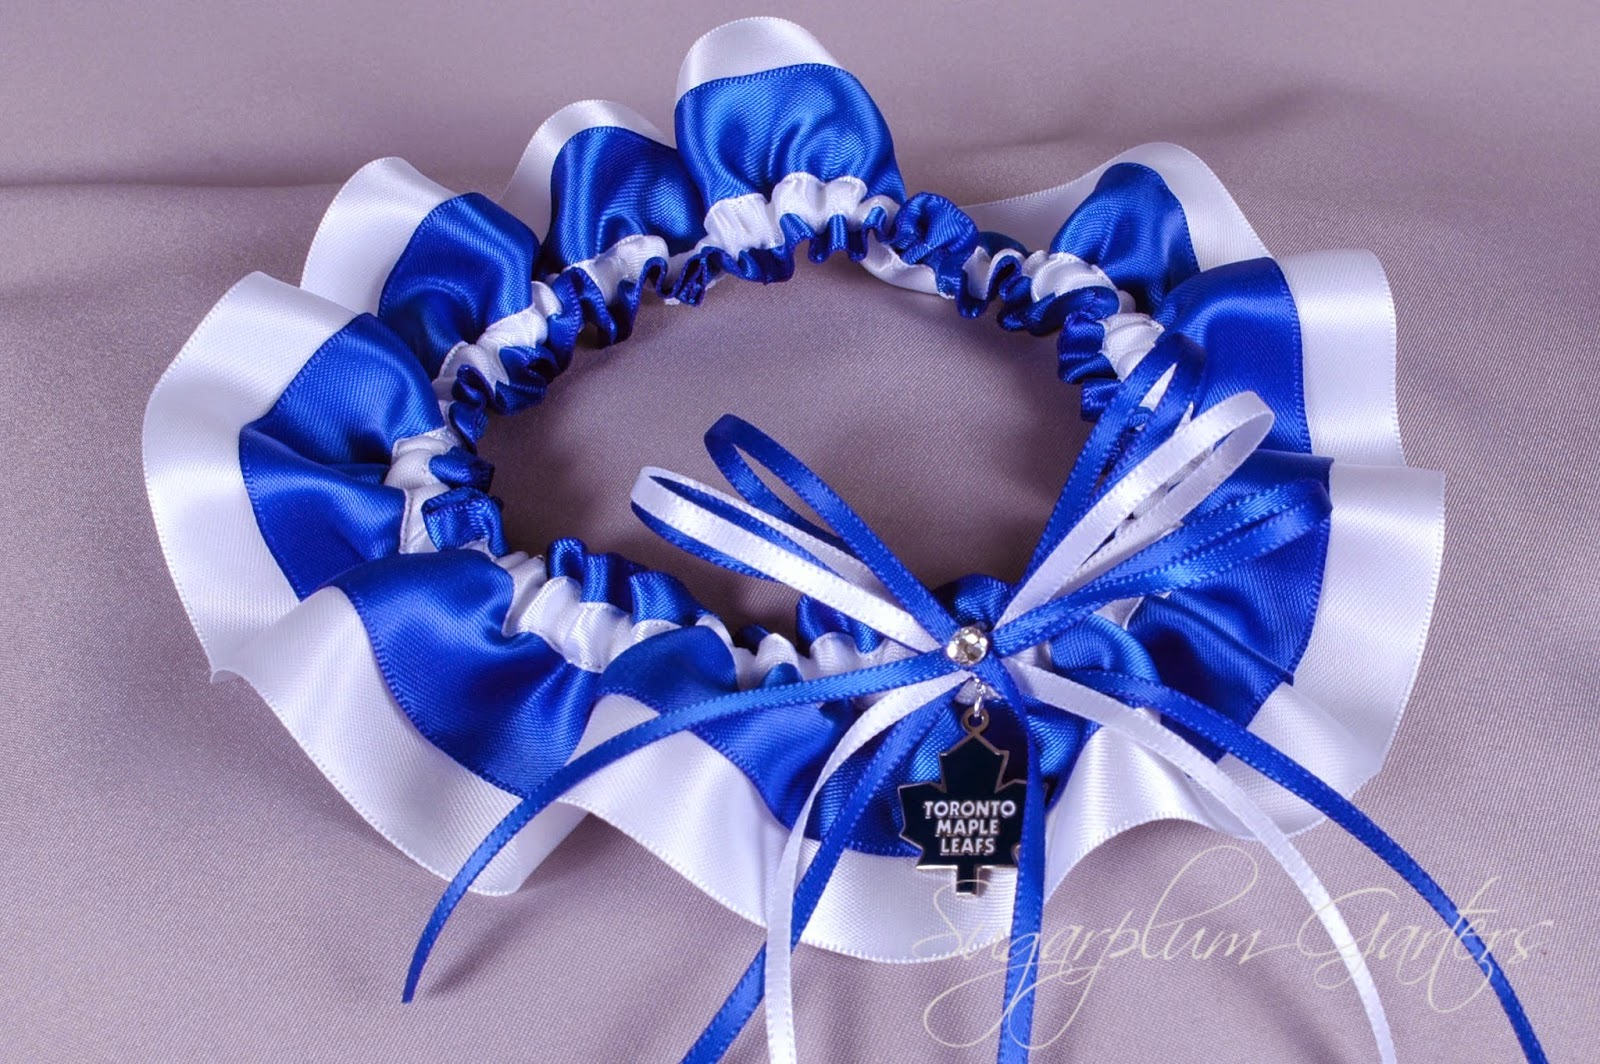 Toronto Maple Leafs Wedding Garter by Sugarplum Garters